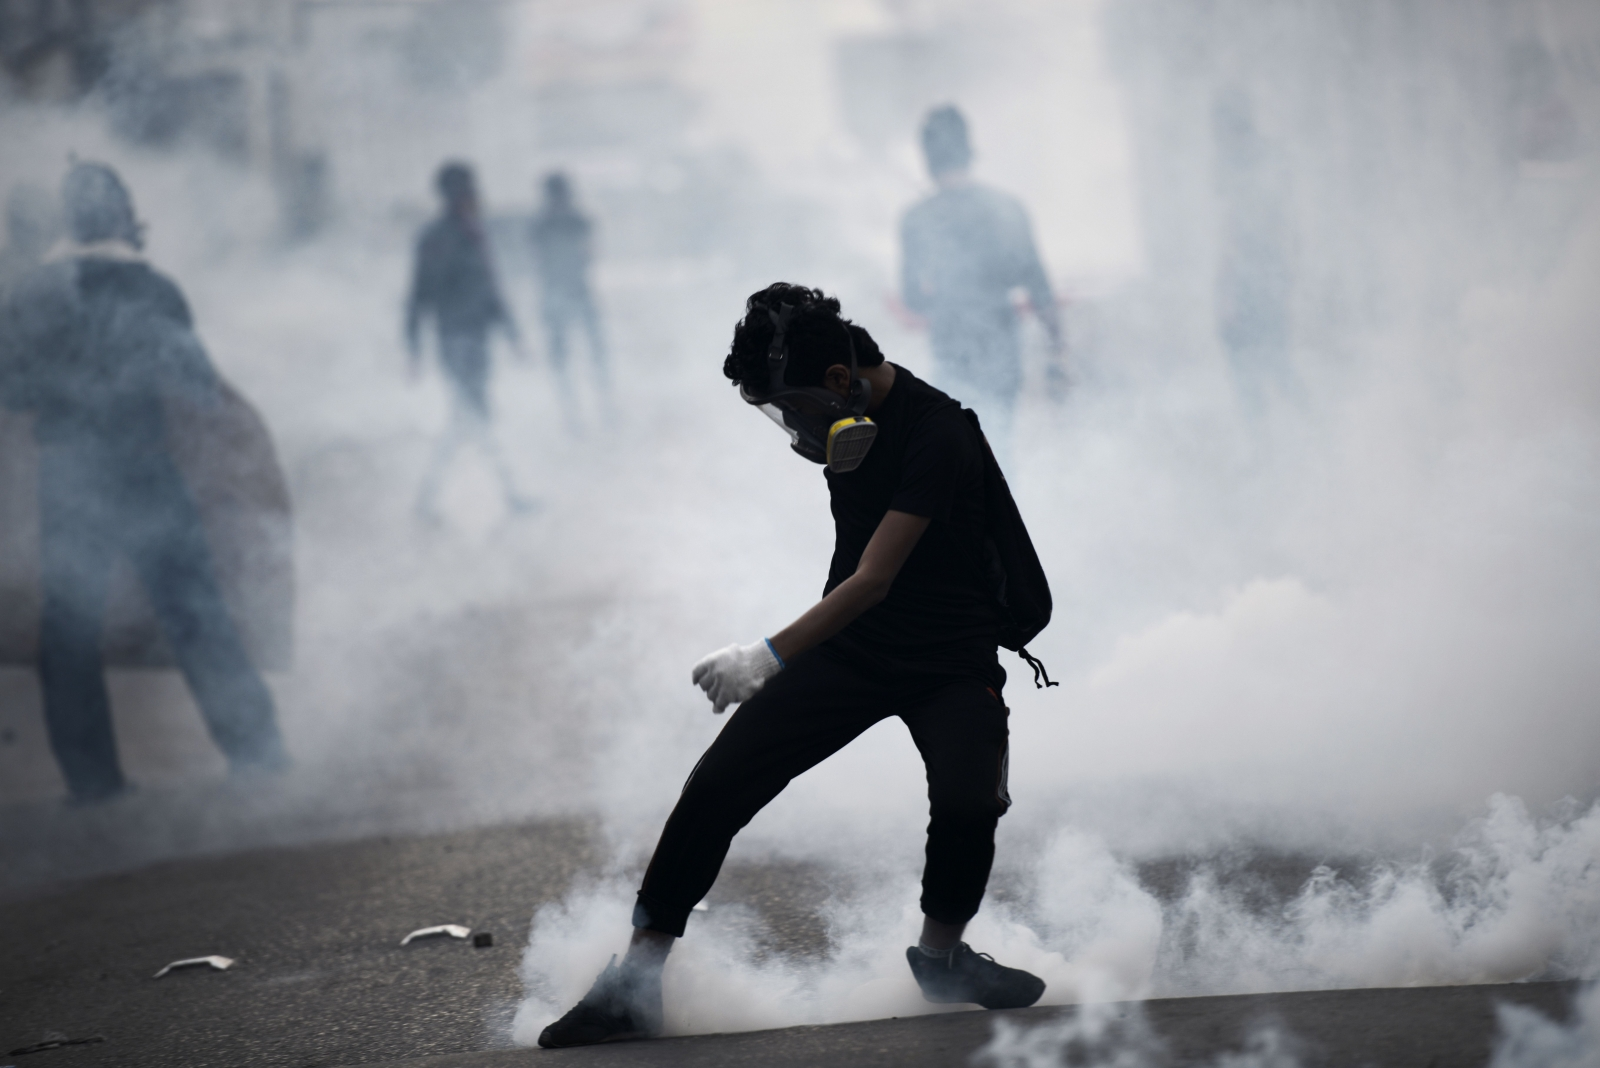 A Bahraini protester kicks back a tear gas canister during clashes with riot police following a protest against the arrest of the head of the banned Shiite opposition movement